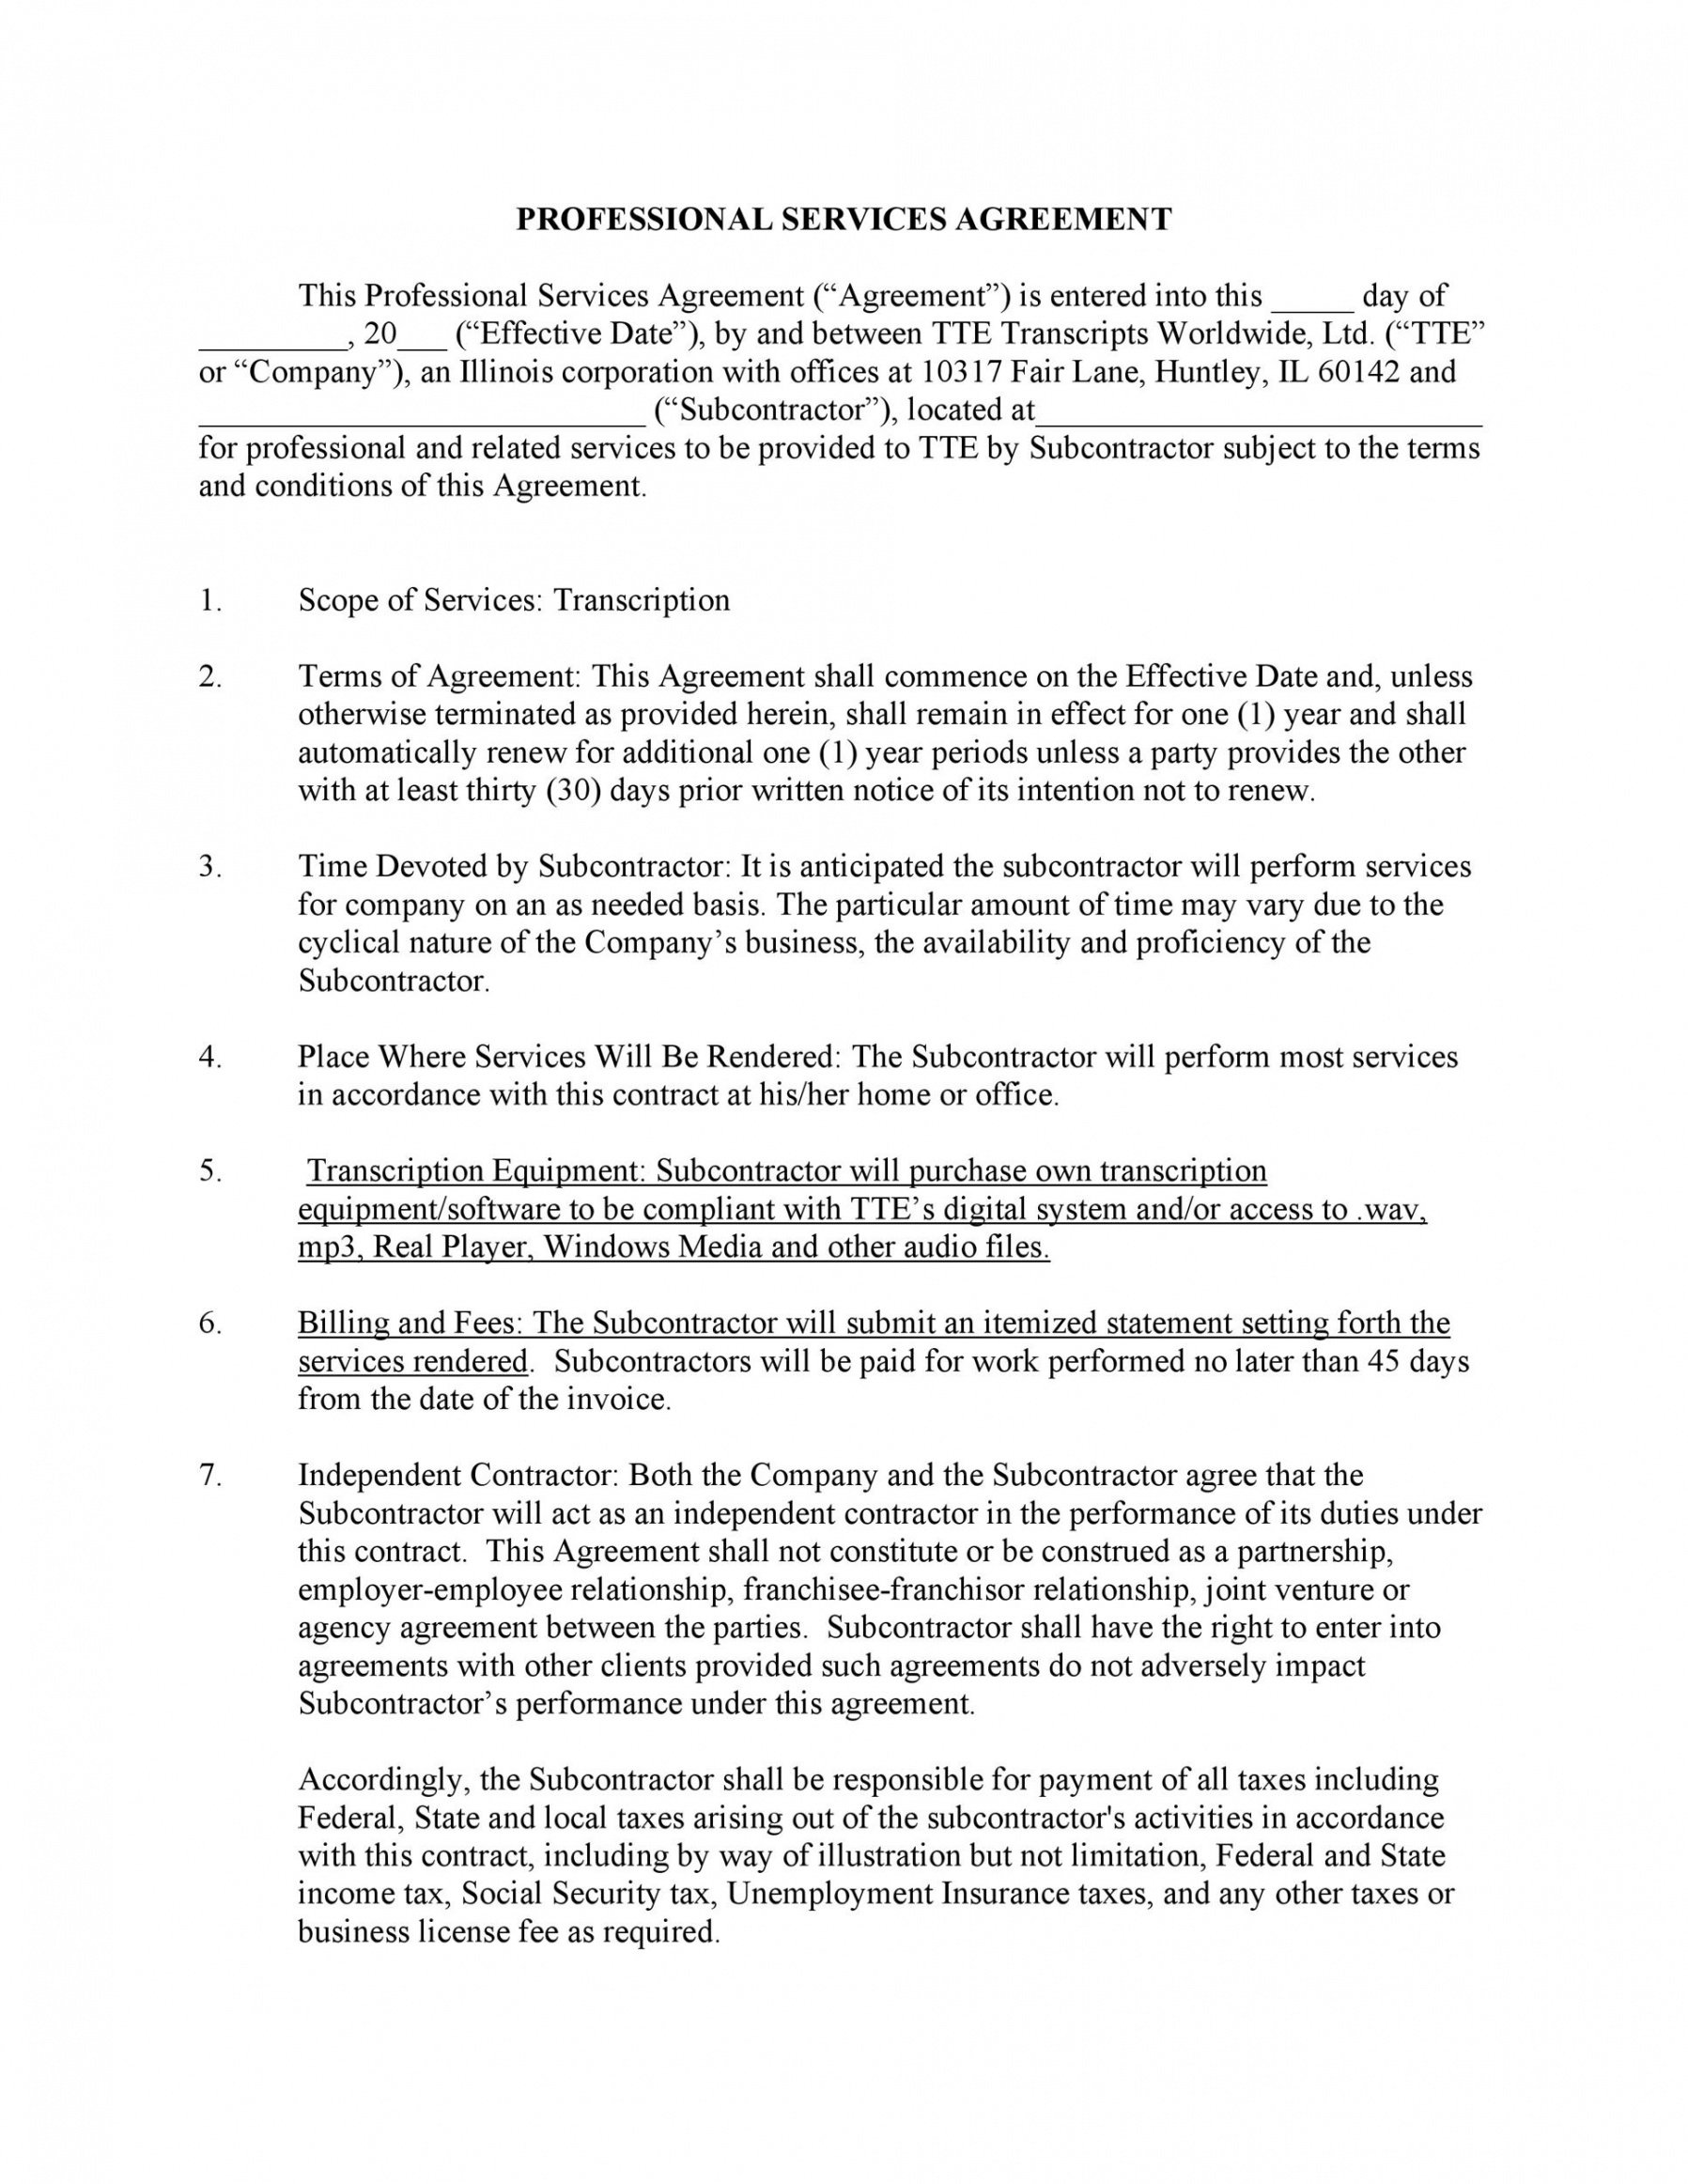 50 professional service agreement templates & contracts it services contract template pdf